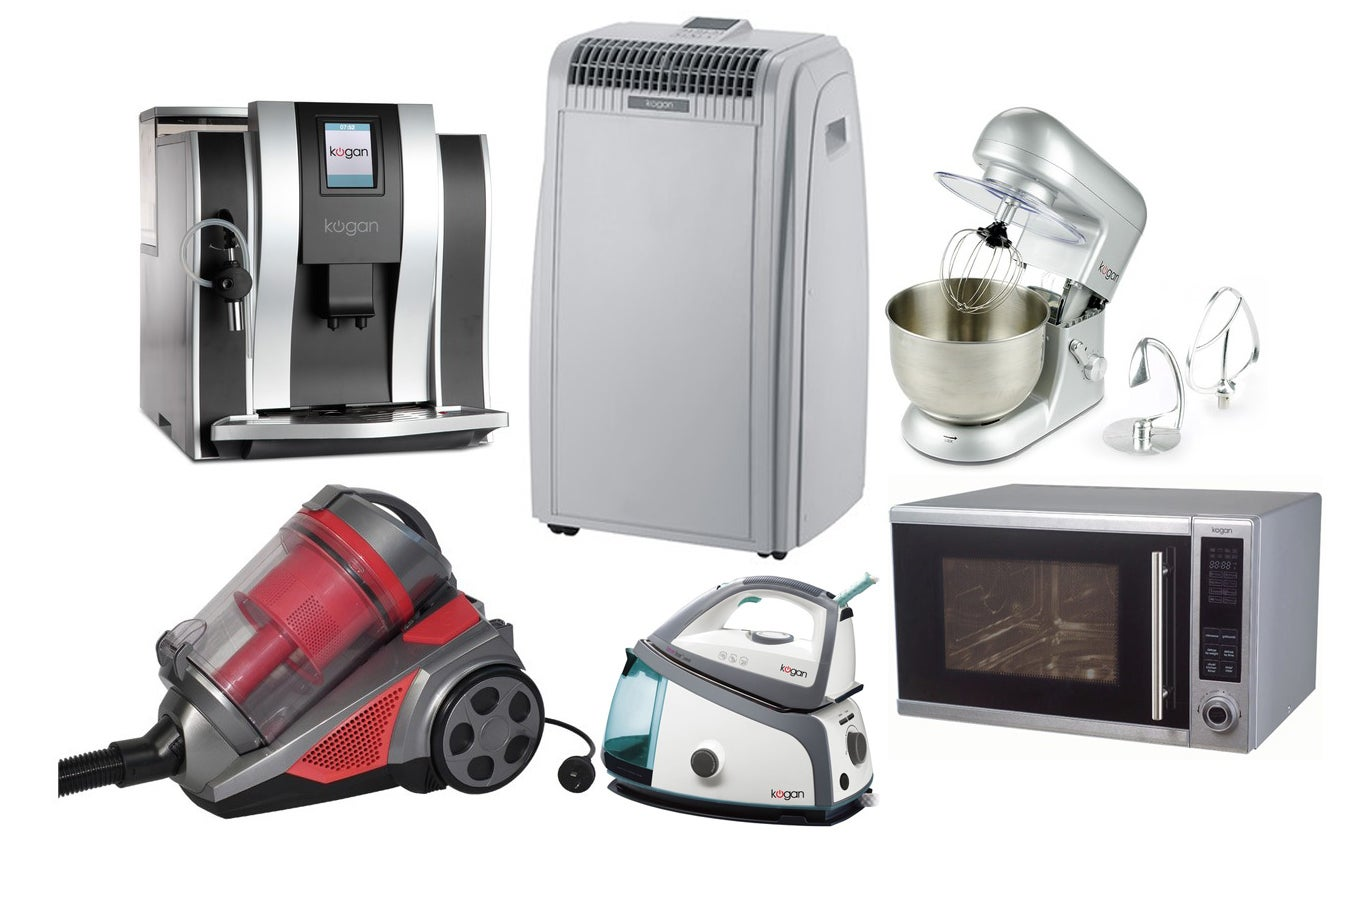 Kogan's expansion into home appliances